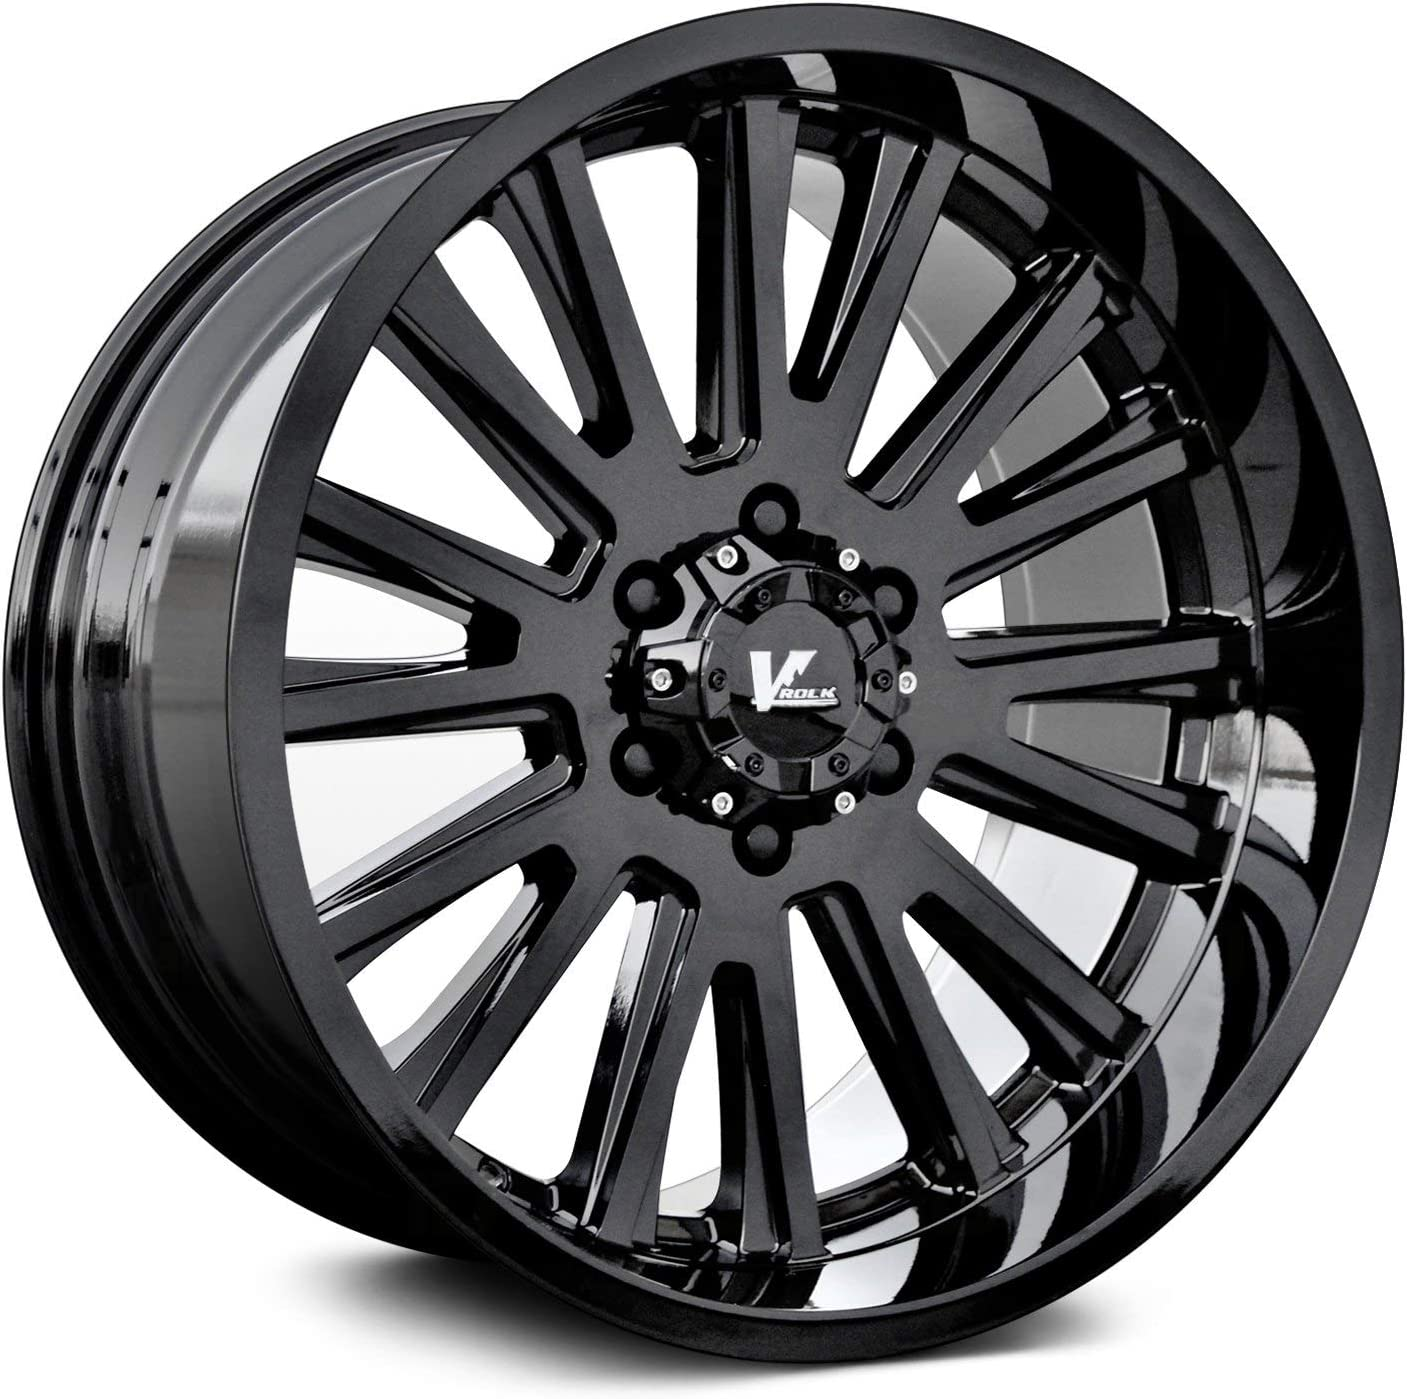 V-Rock All items free Courier shipping free shipping shipping Anvil Gloss Black Wheel 20 x 8 mm 180 -44 12. inches